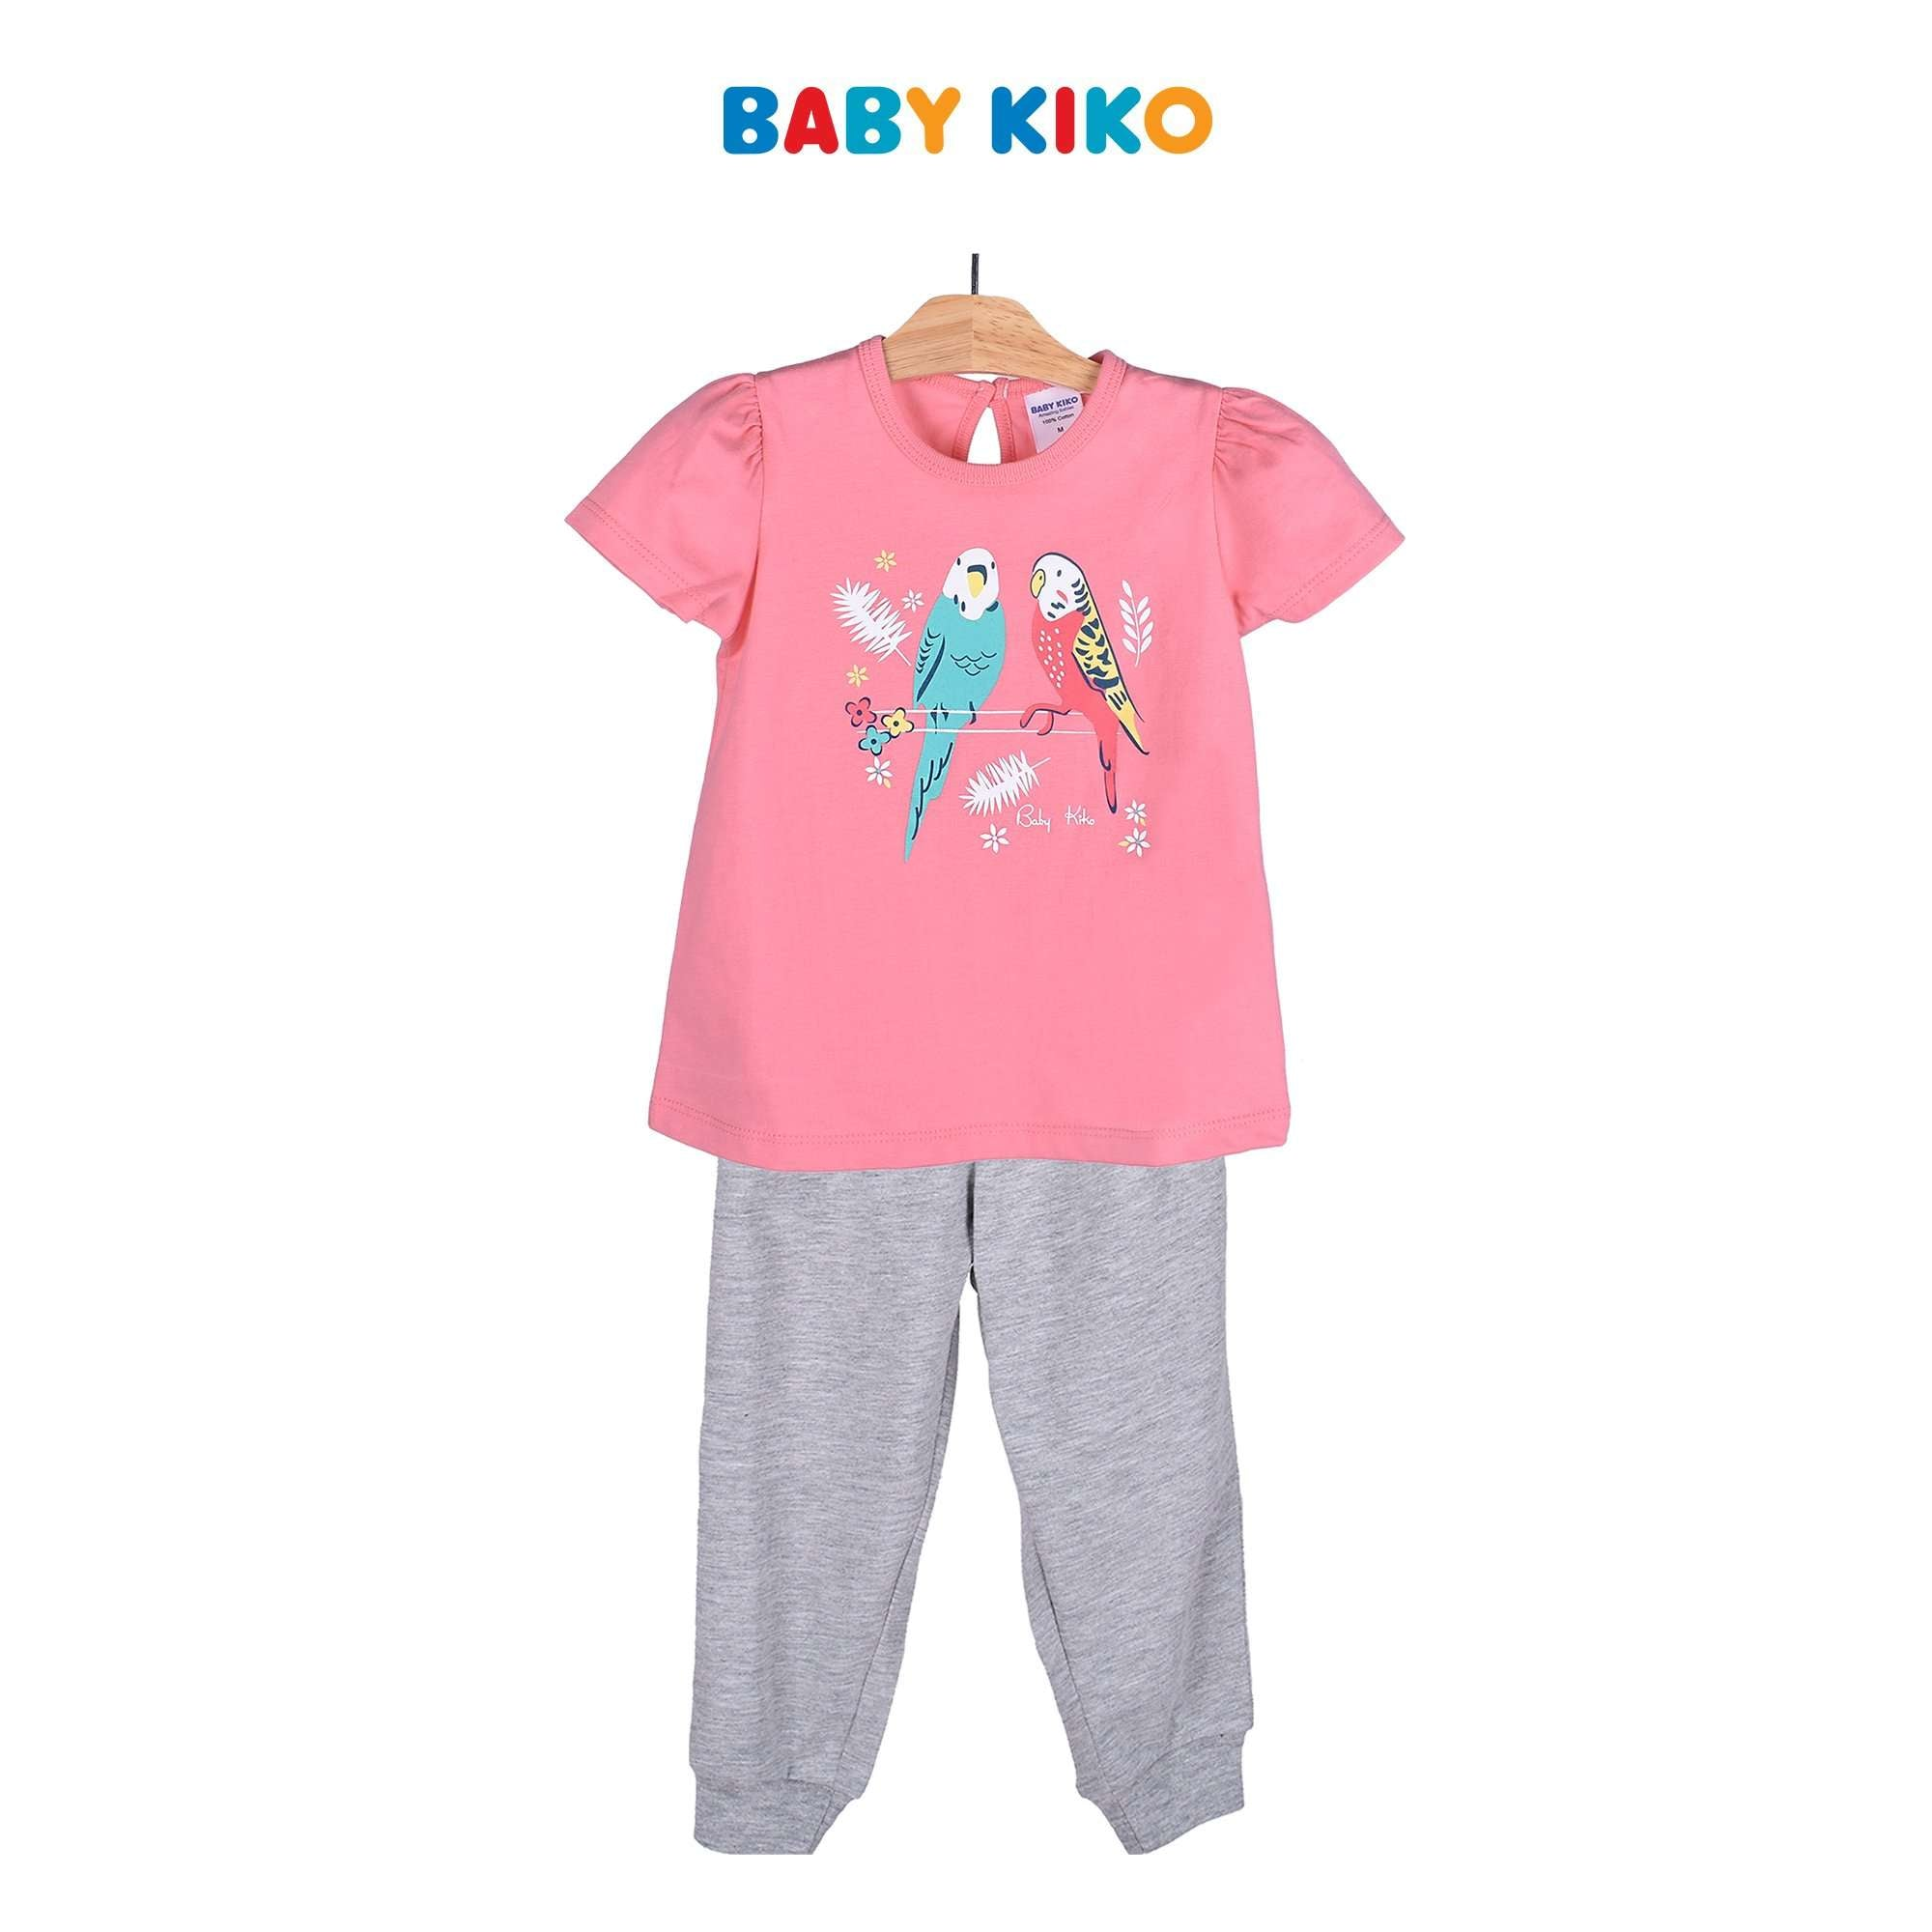 Baby KIKO Toddler Boy Short Sleeve Long Pants Suit - Peach 325145-421 : Buy Baby KIKO online at CMG.MY